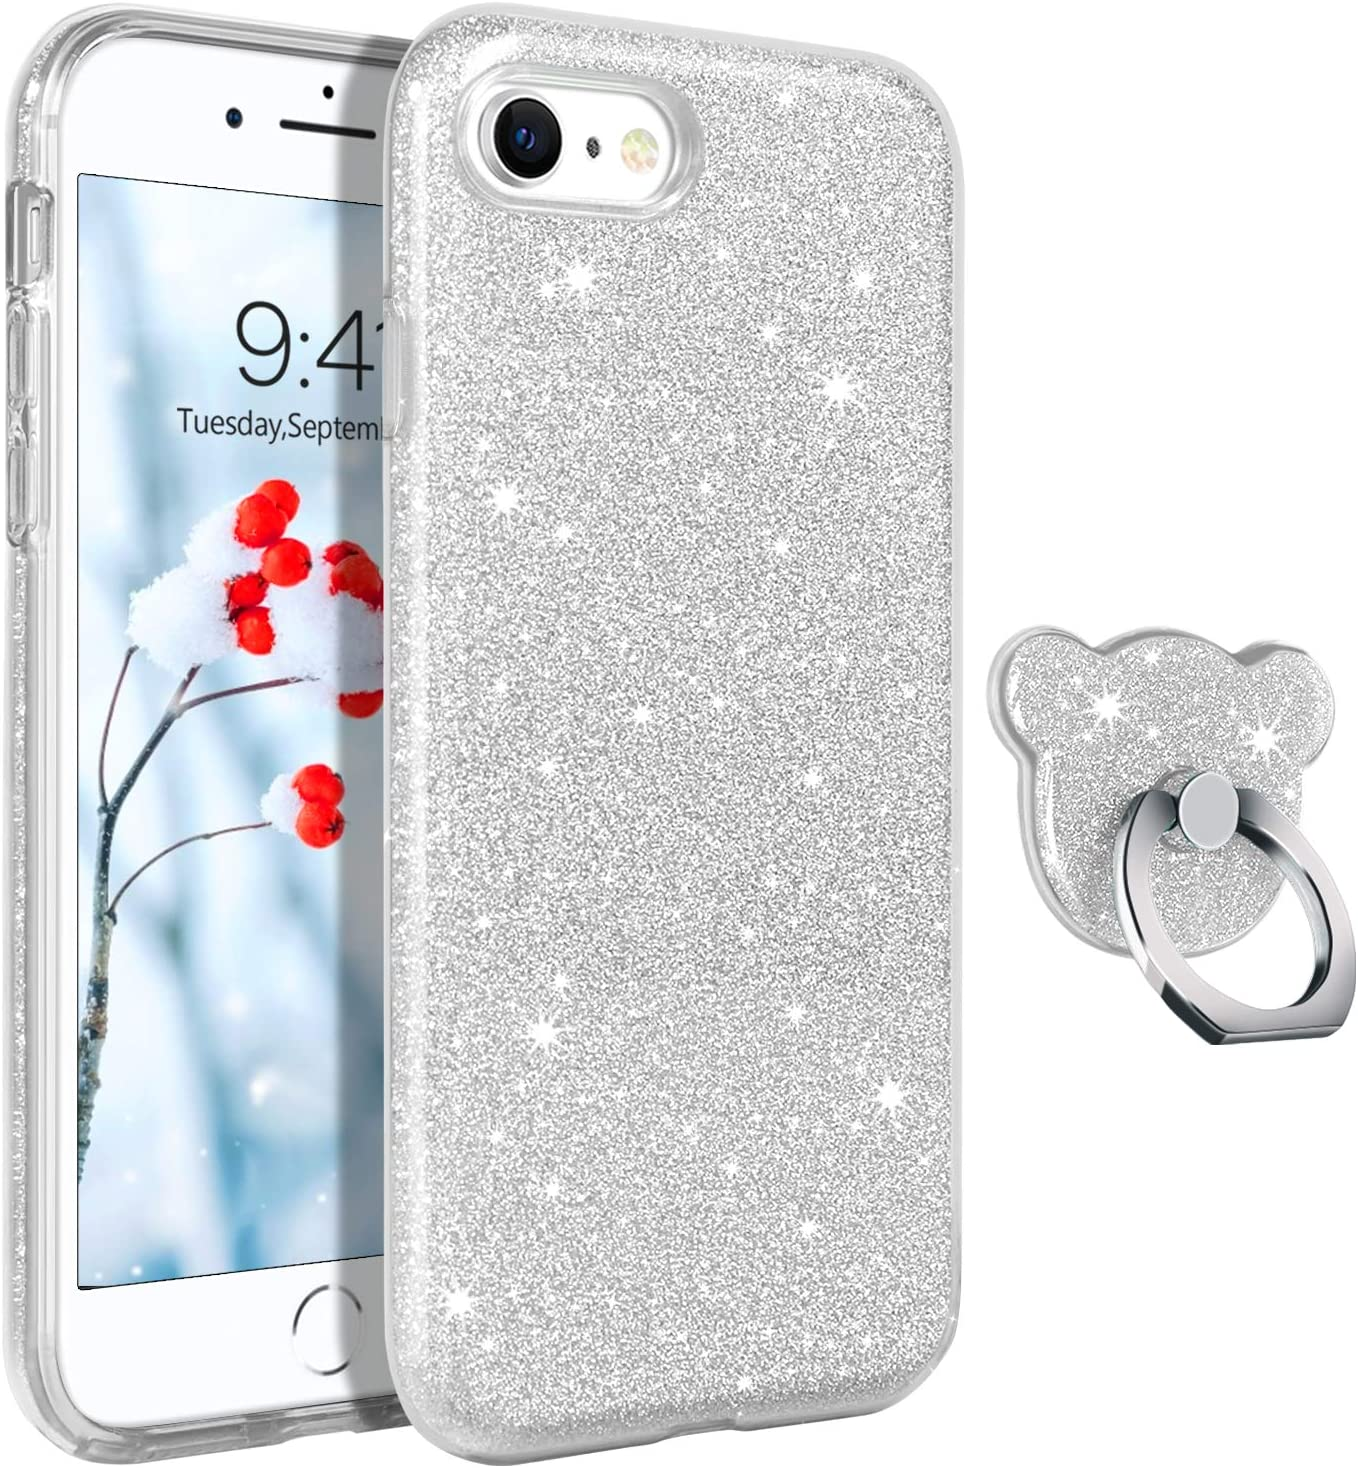 GUAGUA Compatible for iPhone SE 2020/8/7 Case Glitter Sparkle Bling Shiny Cute Cover for Girls Women with Extra Ring Holder Kickstand Slim Protective Phone Cases for iPhone SE 2020/8/7 4.7-inch Silver